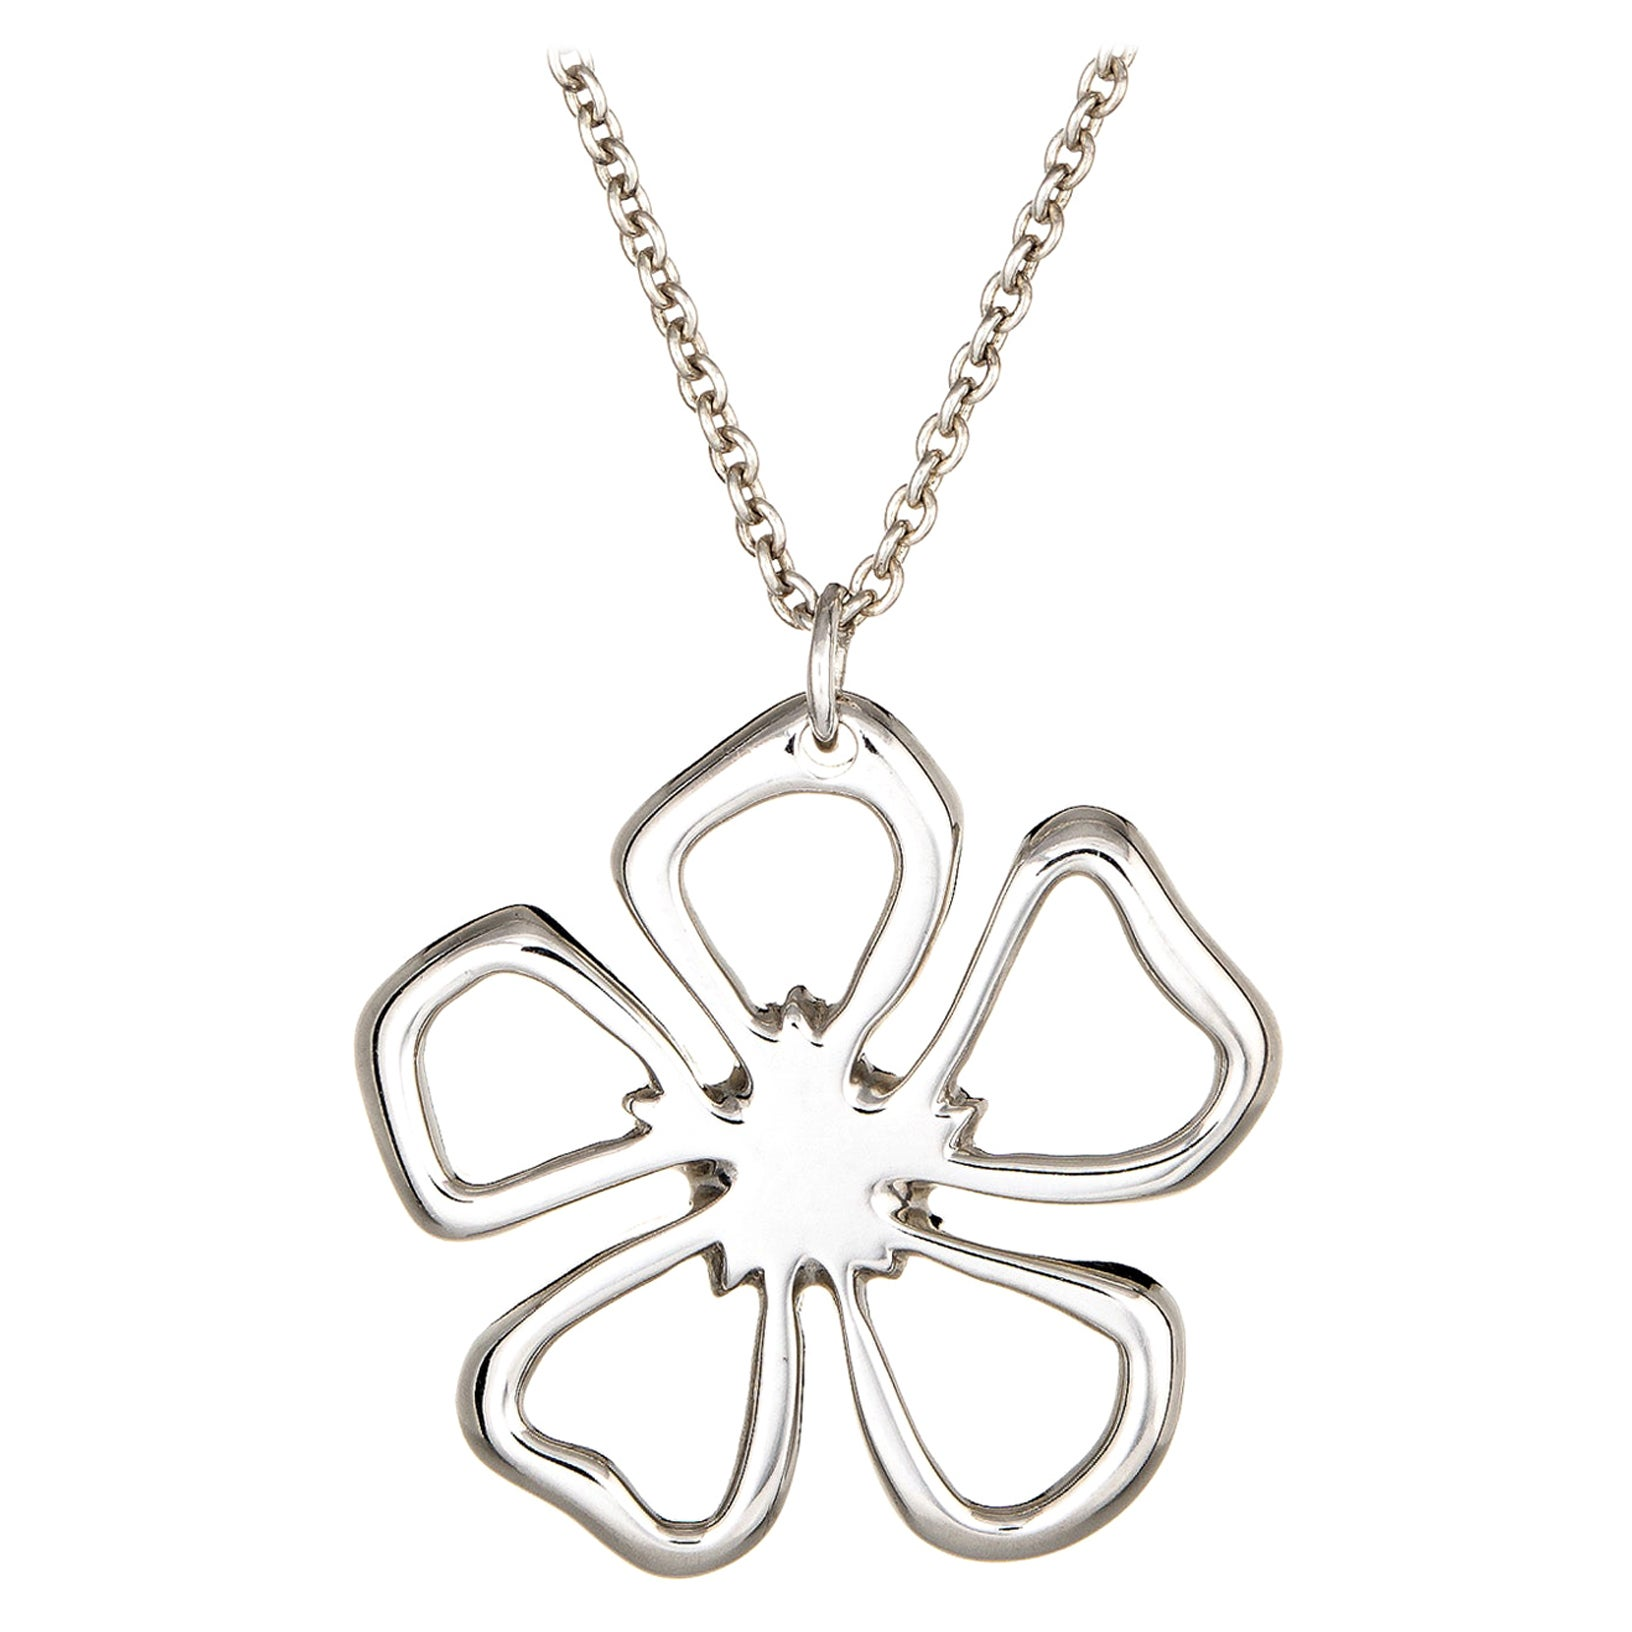 Tiffany & Co. Flower Necklace Sterling Silver Estate Fine Jewelry Signed